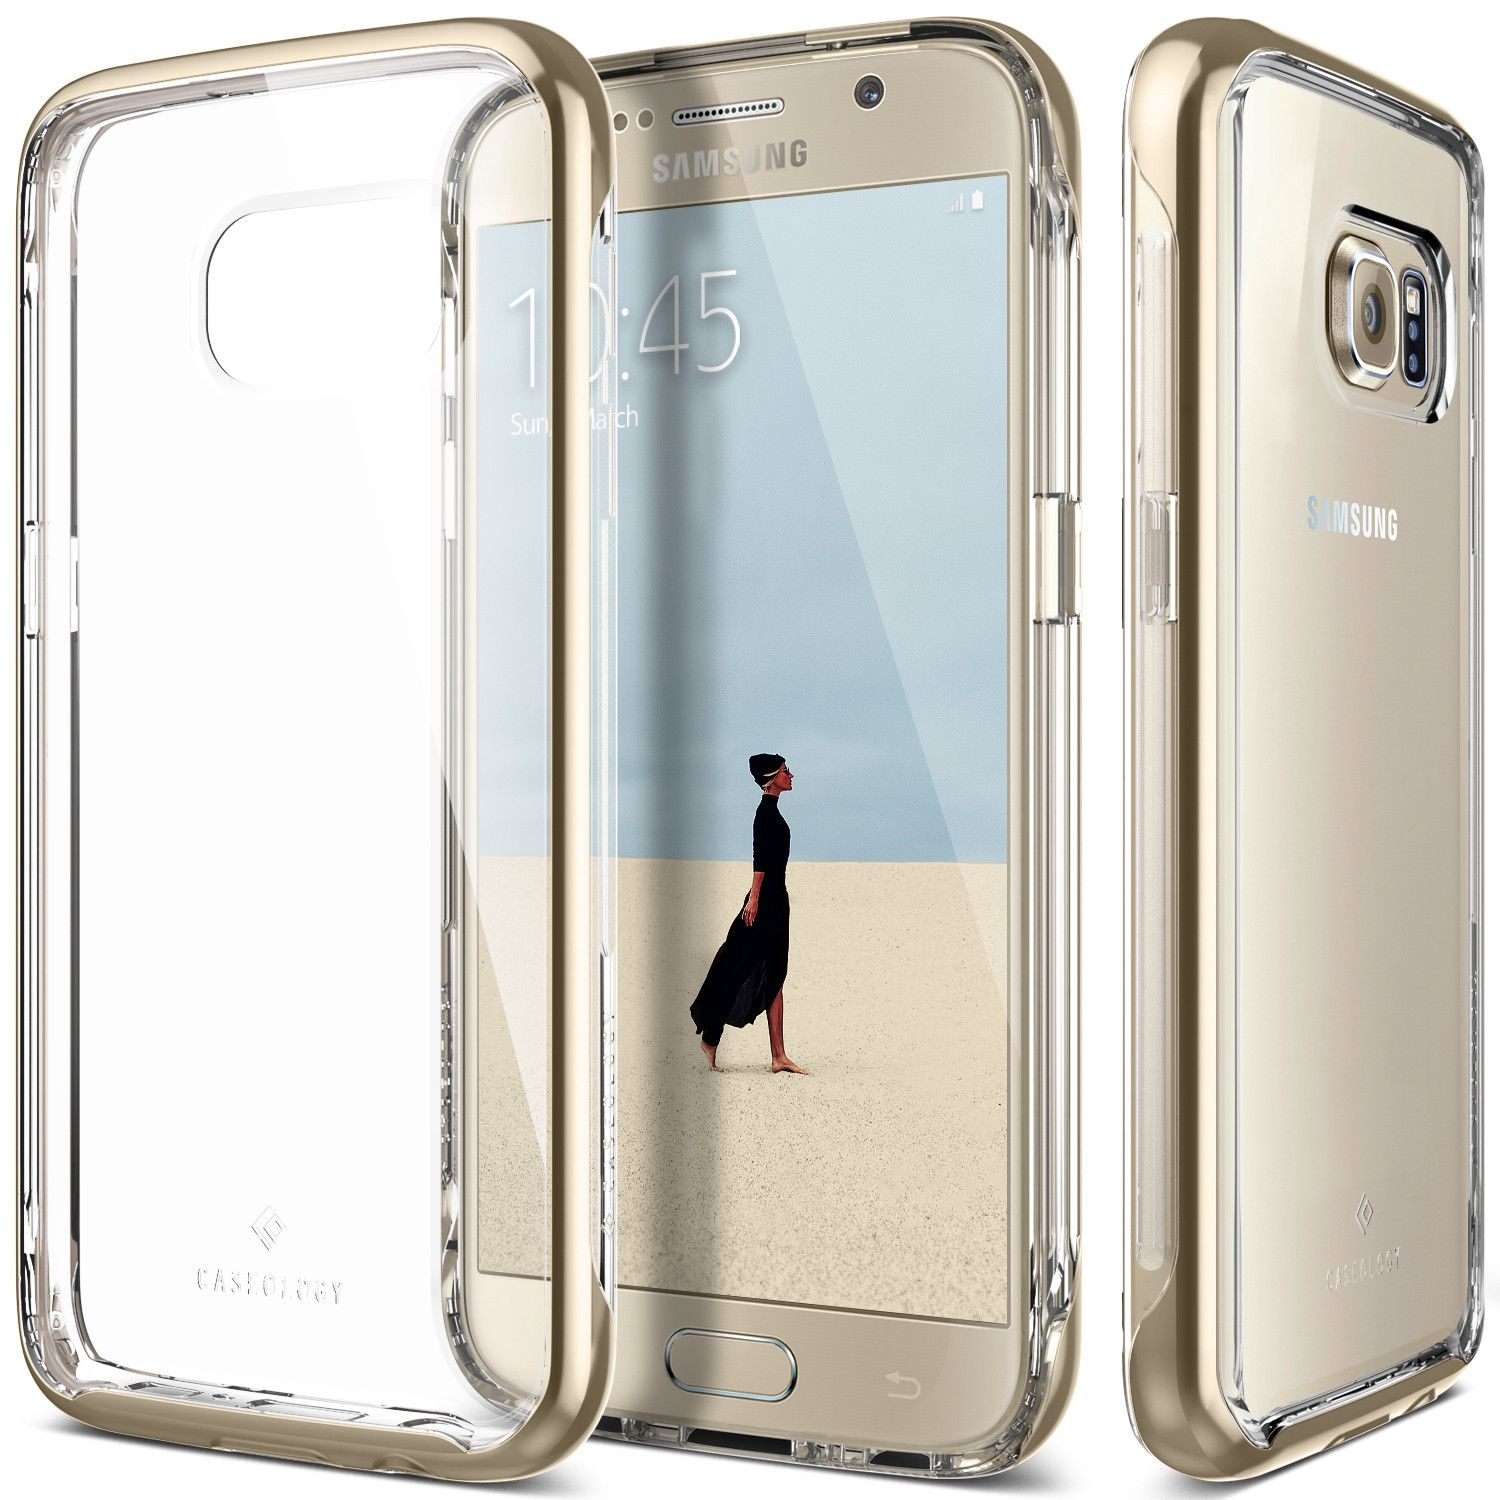 Samsung galaxy s7 edge olympic edition will unveil on july 7 mobile - Galaxy S7 Case Skyfall